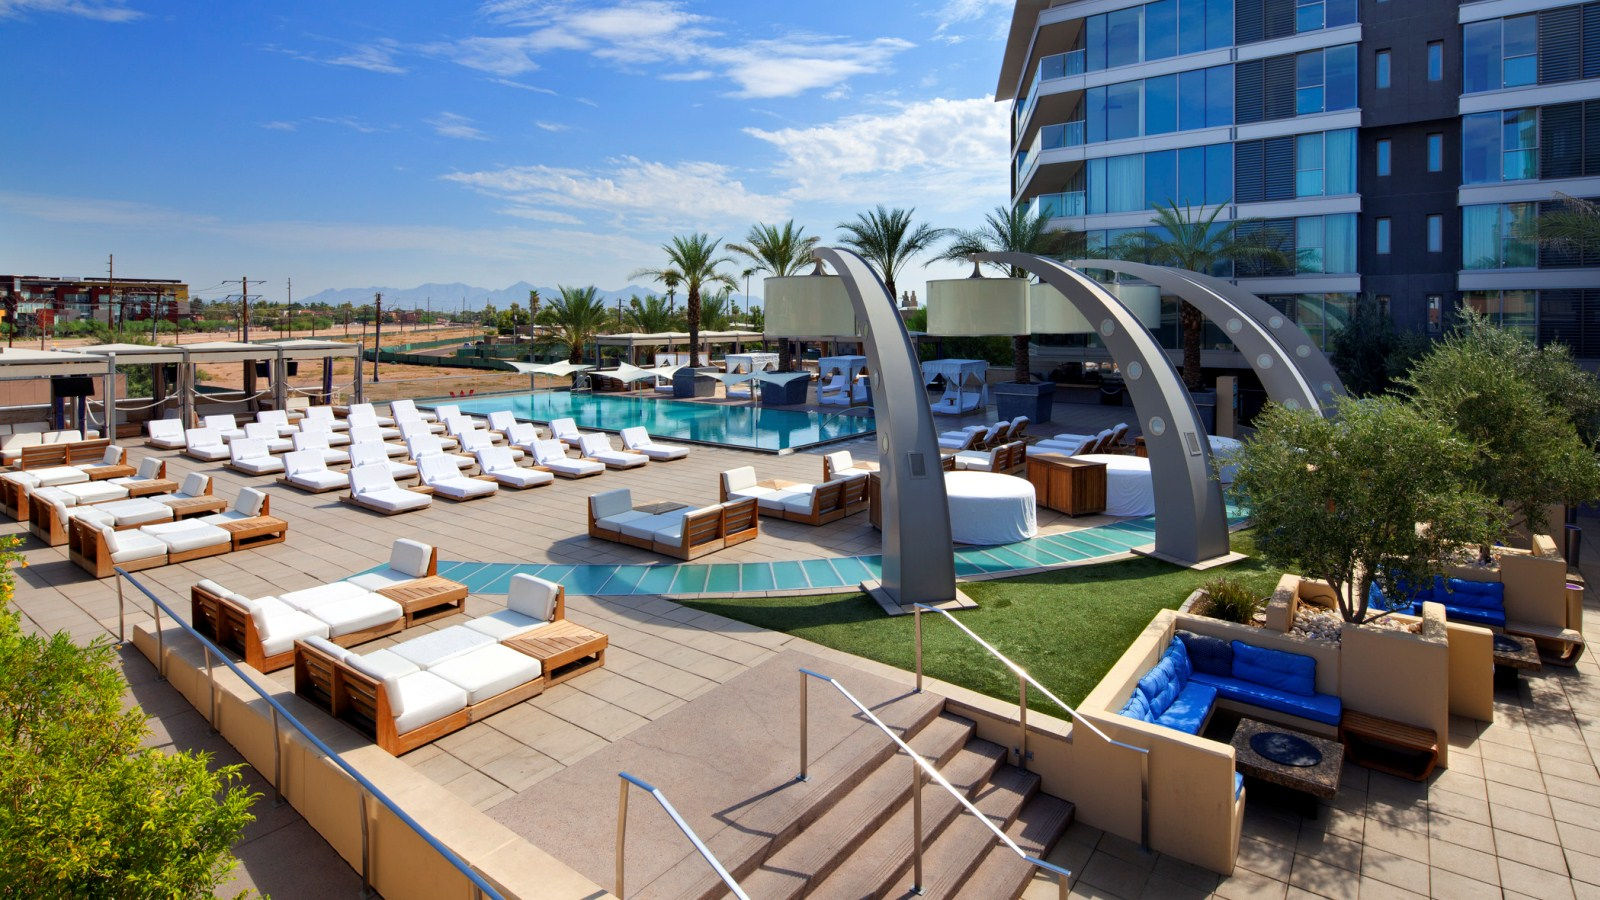 5 Hotel Pools Worth Adding To Your Must Visit List